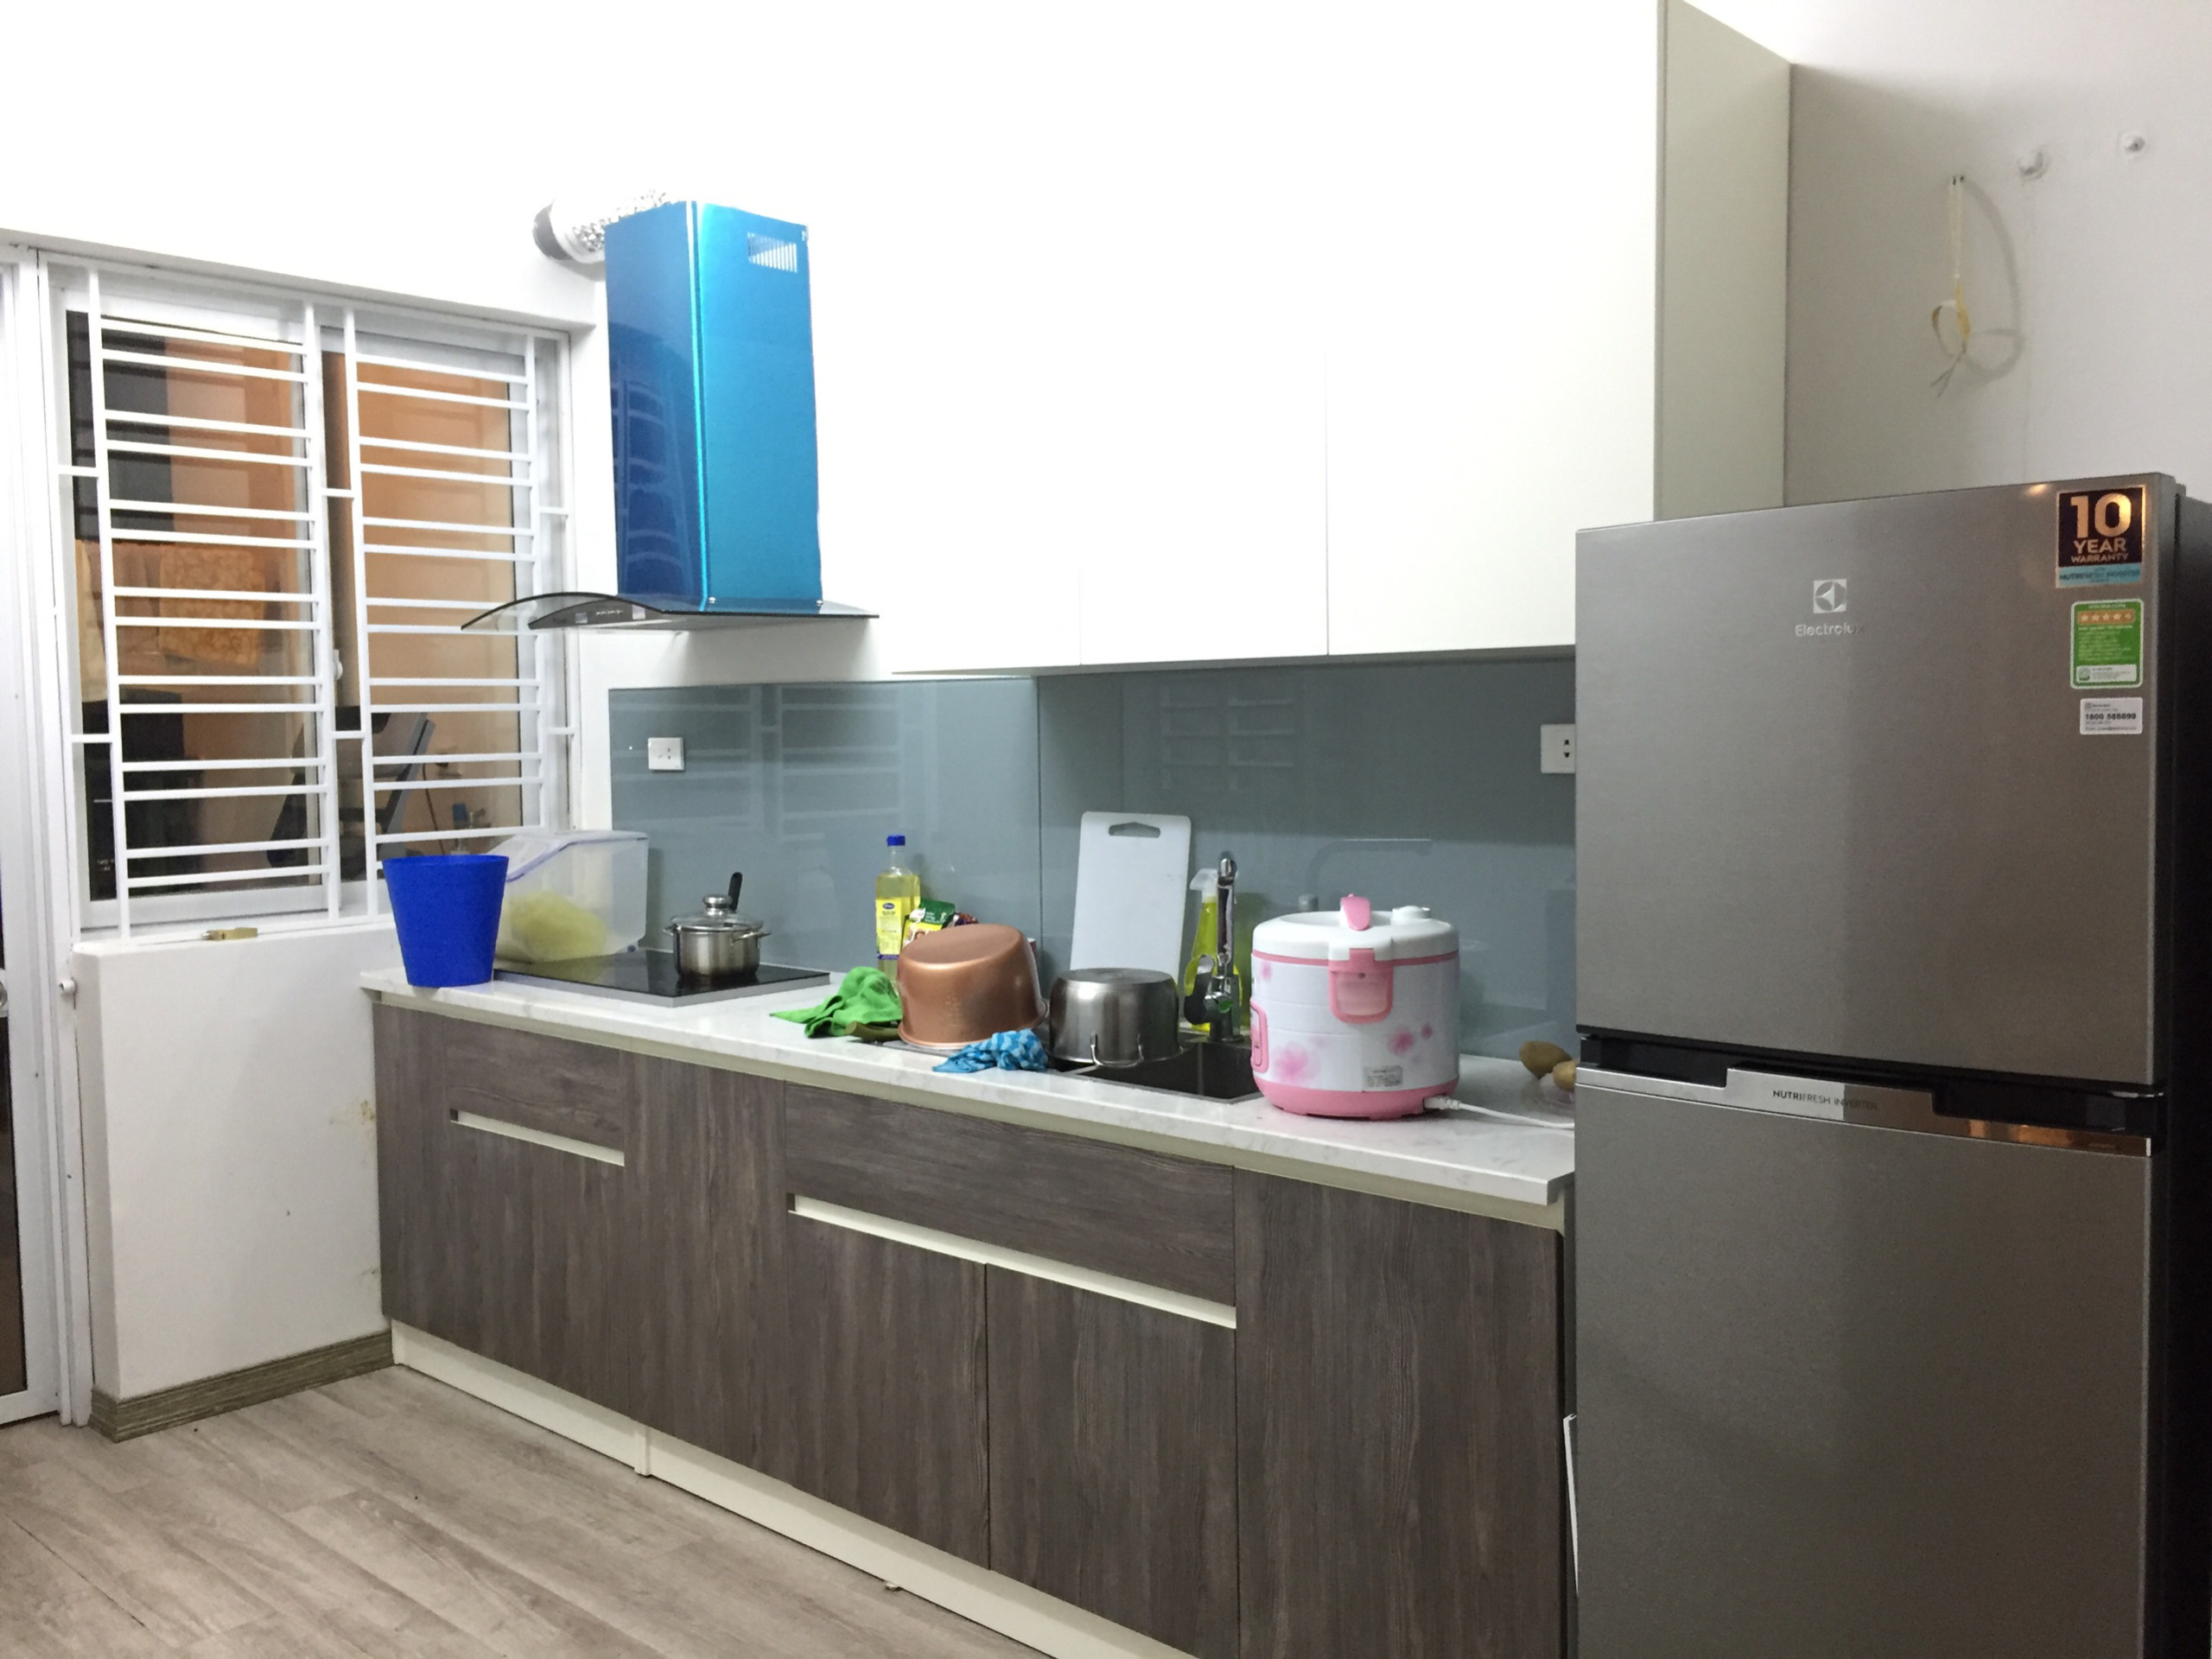 Nice furnished apartment for rent at Le Hong Phong str., Hai Phong city centre